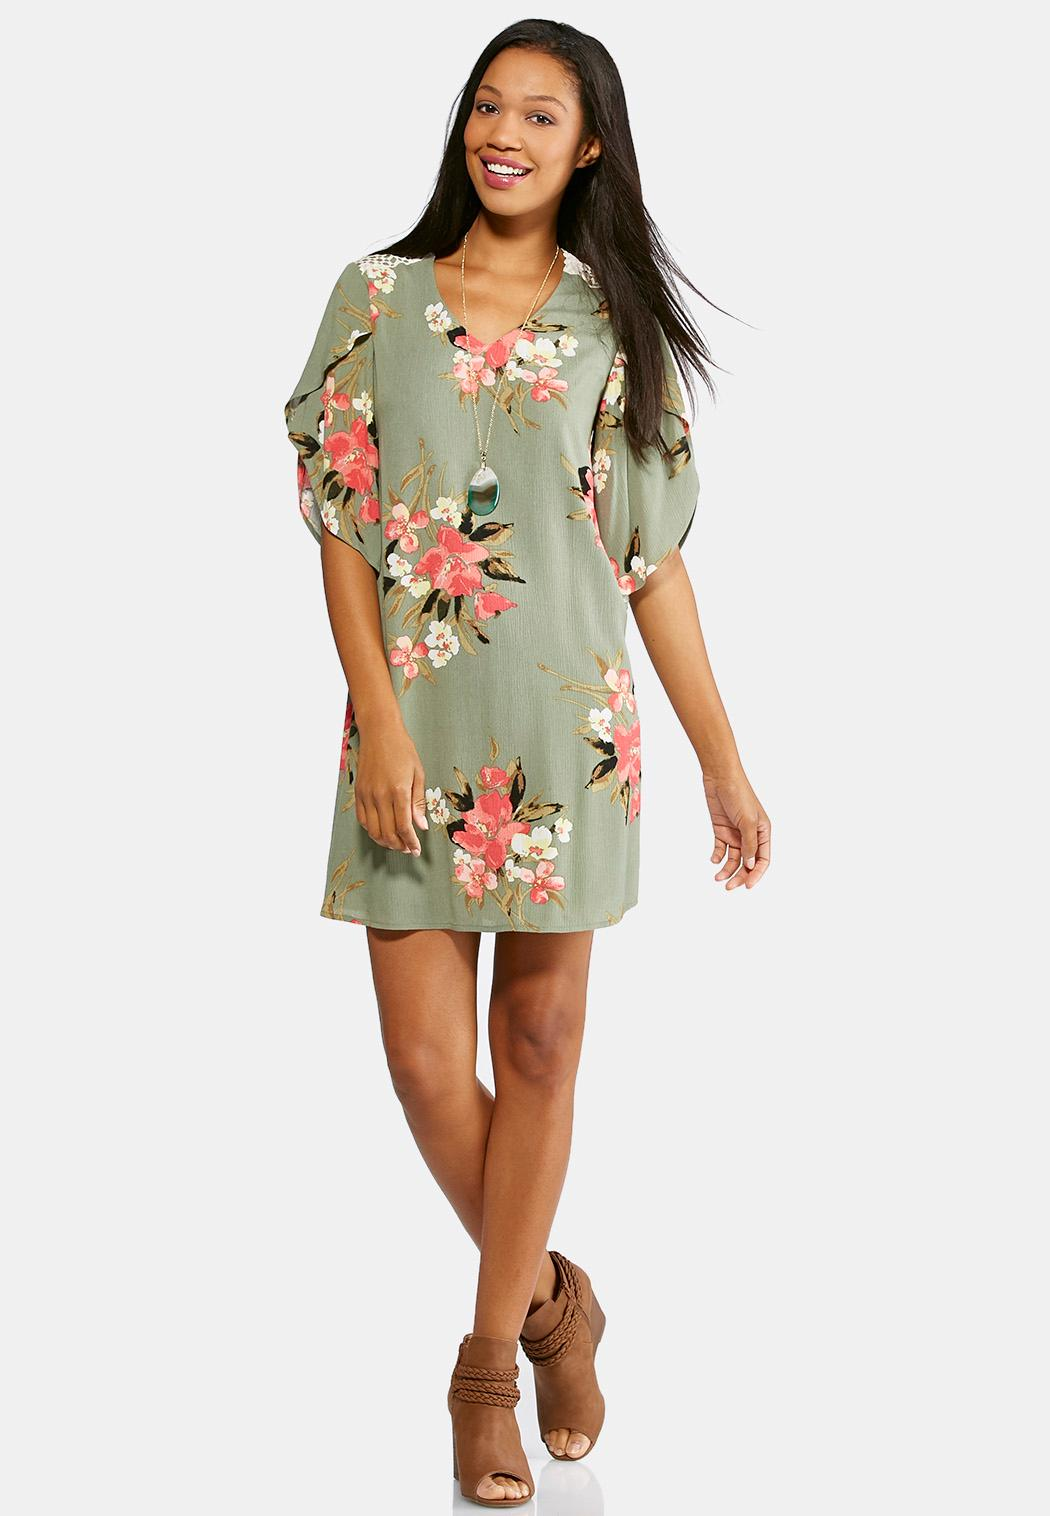 Plus Size Floral Tulip Sleeve Dress A-line & Swing Cato Fashions